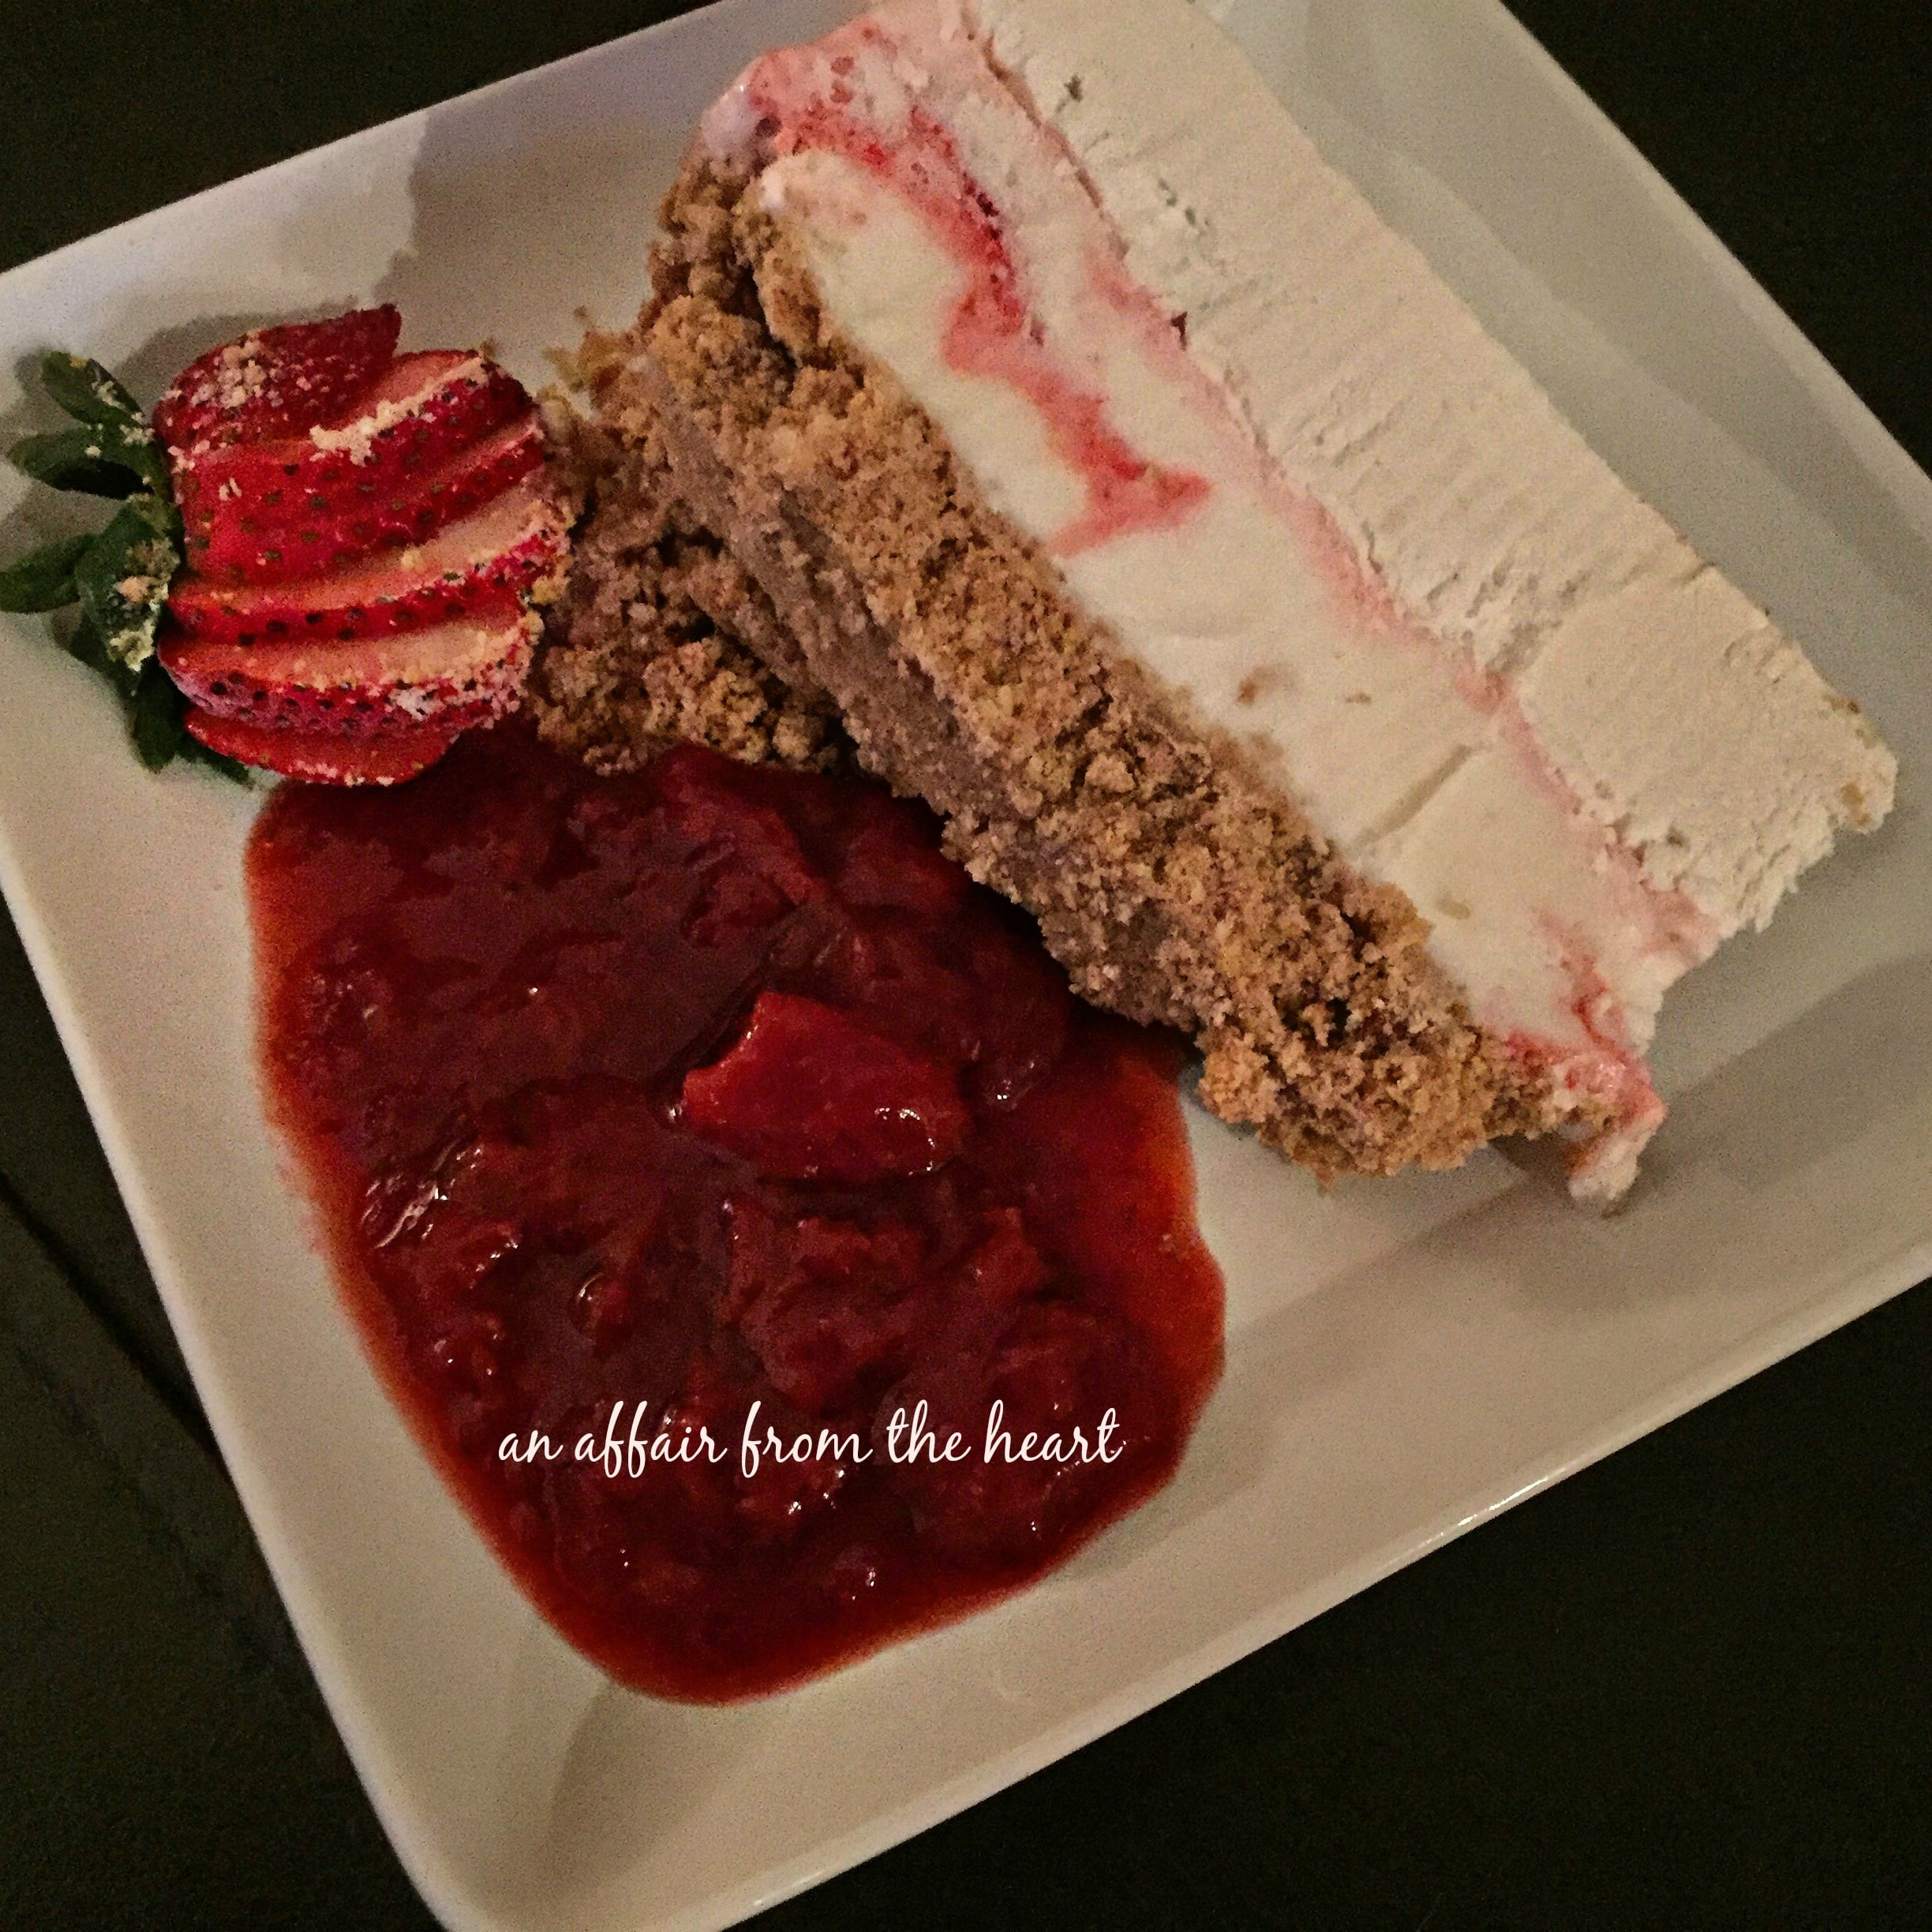 Strawberries Cream Torte Recipe: Strawberry Cheesecake Ice Cream Torte